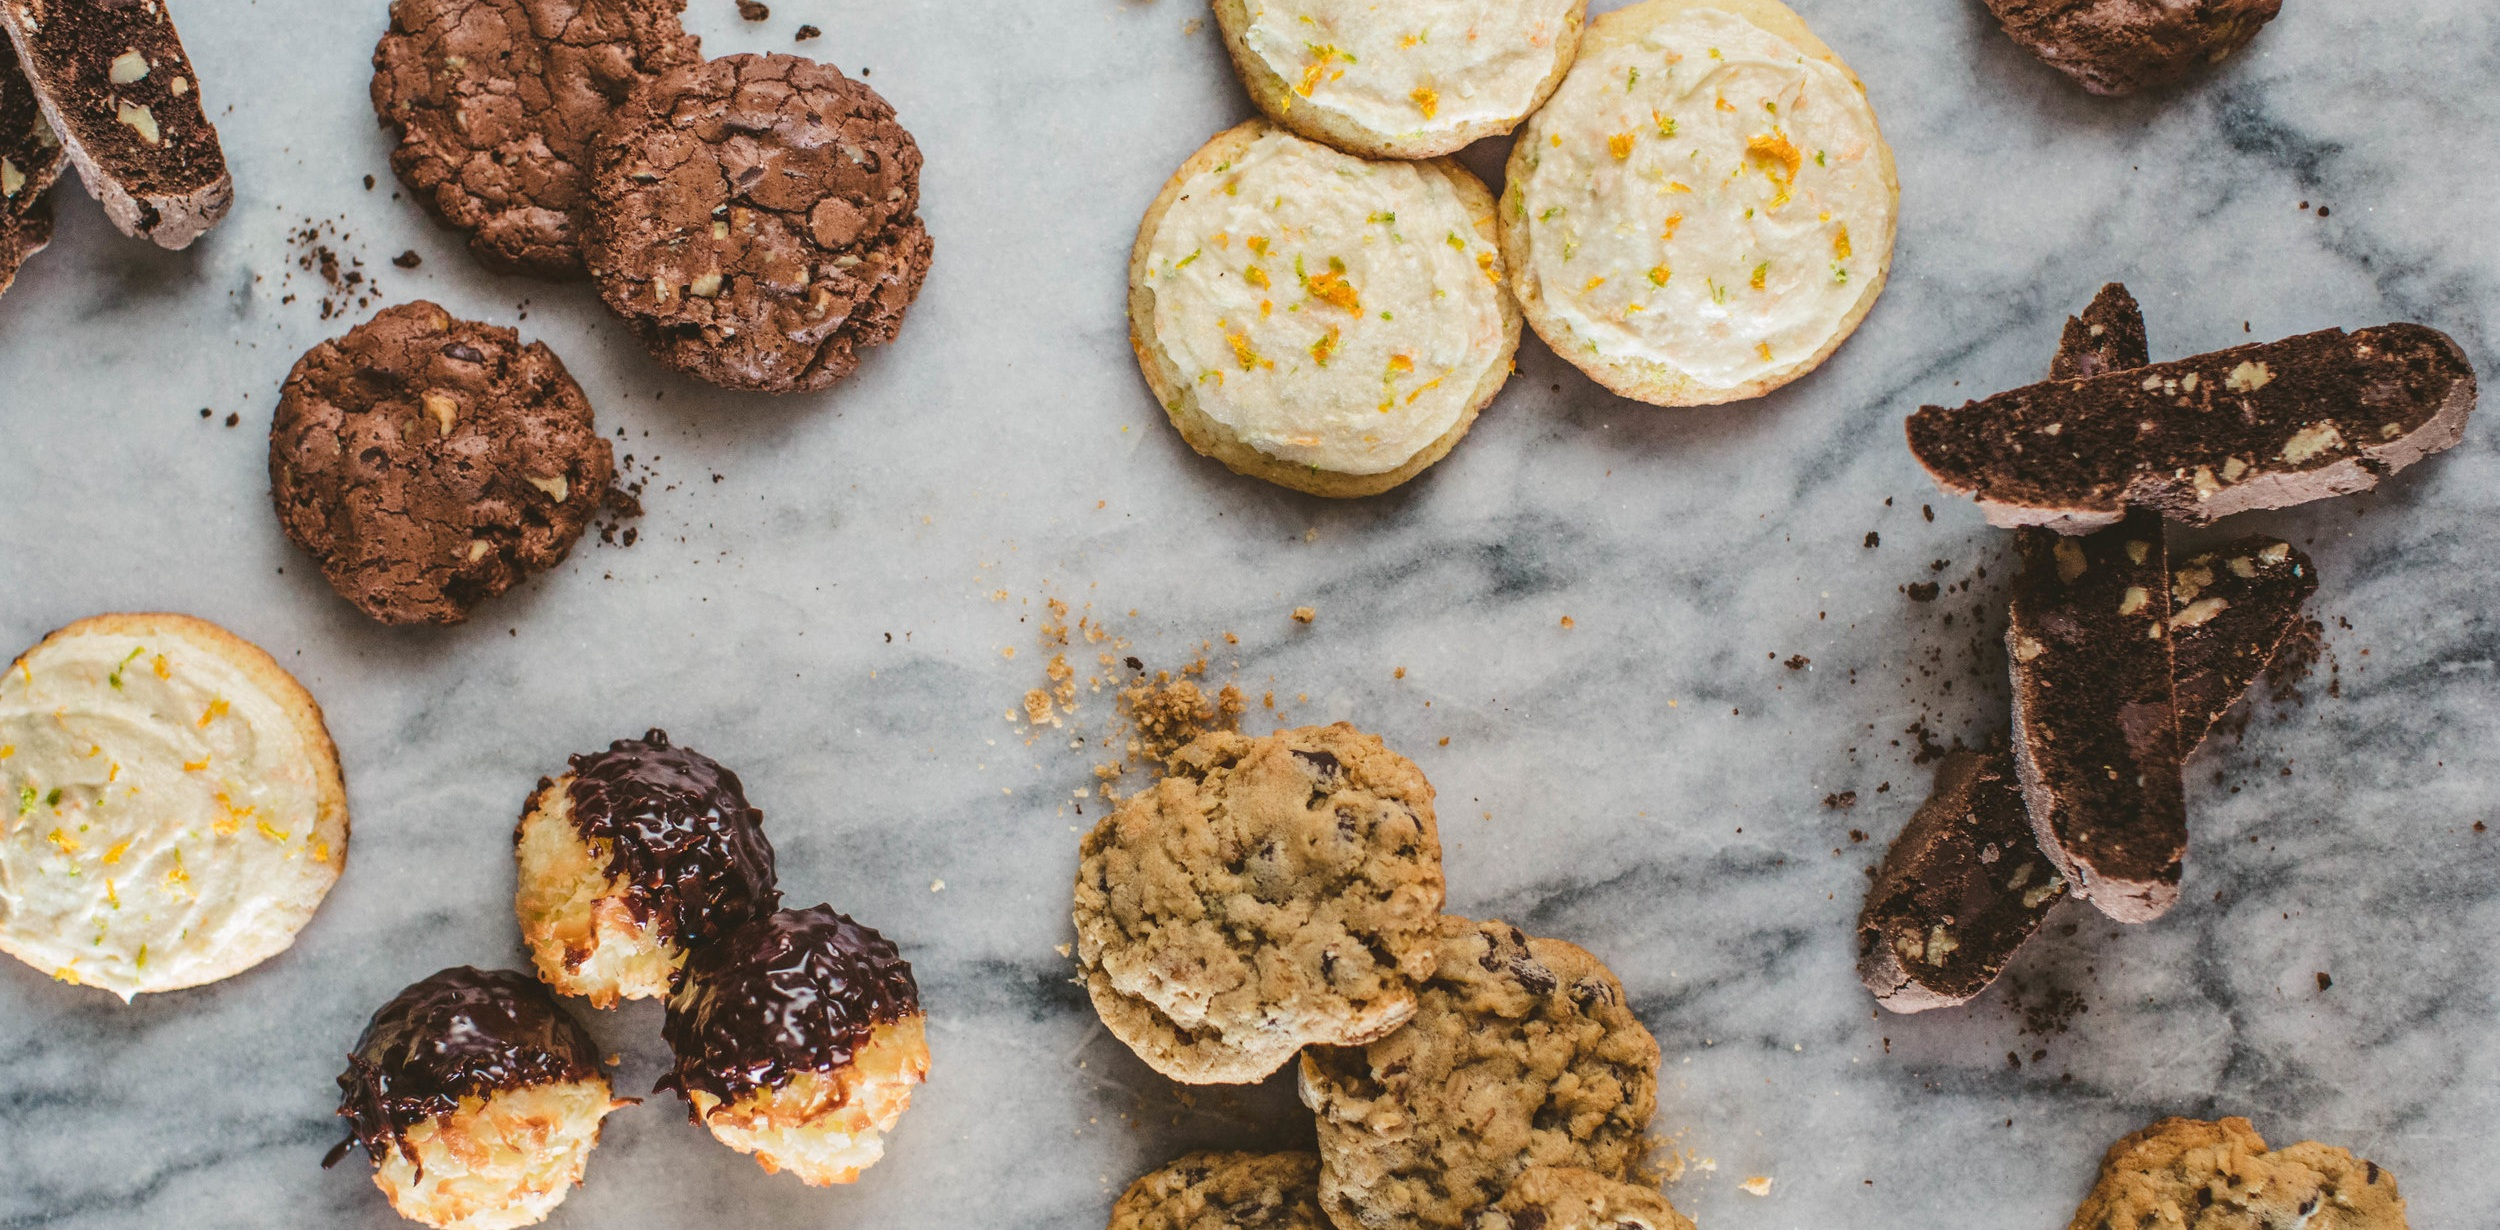 My Five Favorite Cookies - Enjoy this collection of my five favorite cookie recipes of all time.